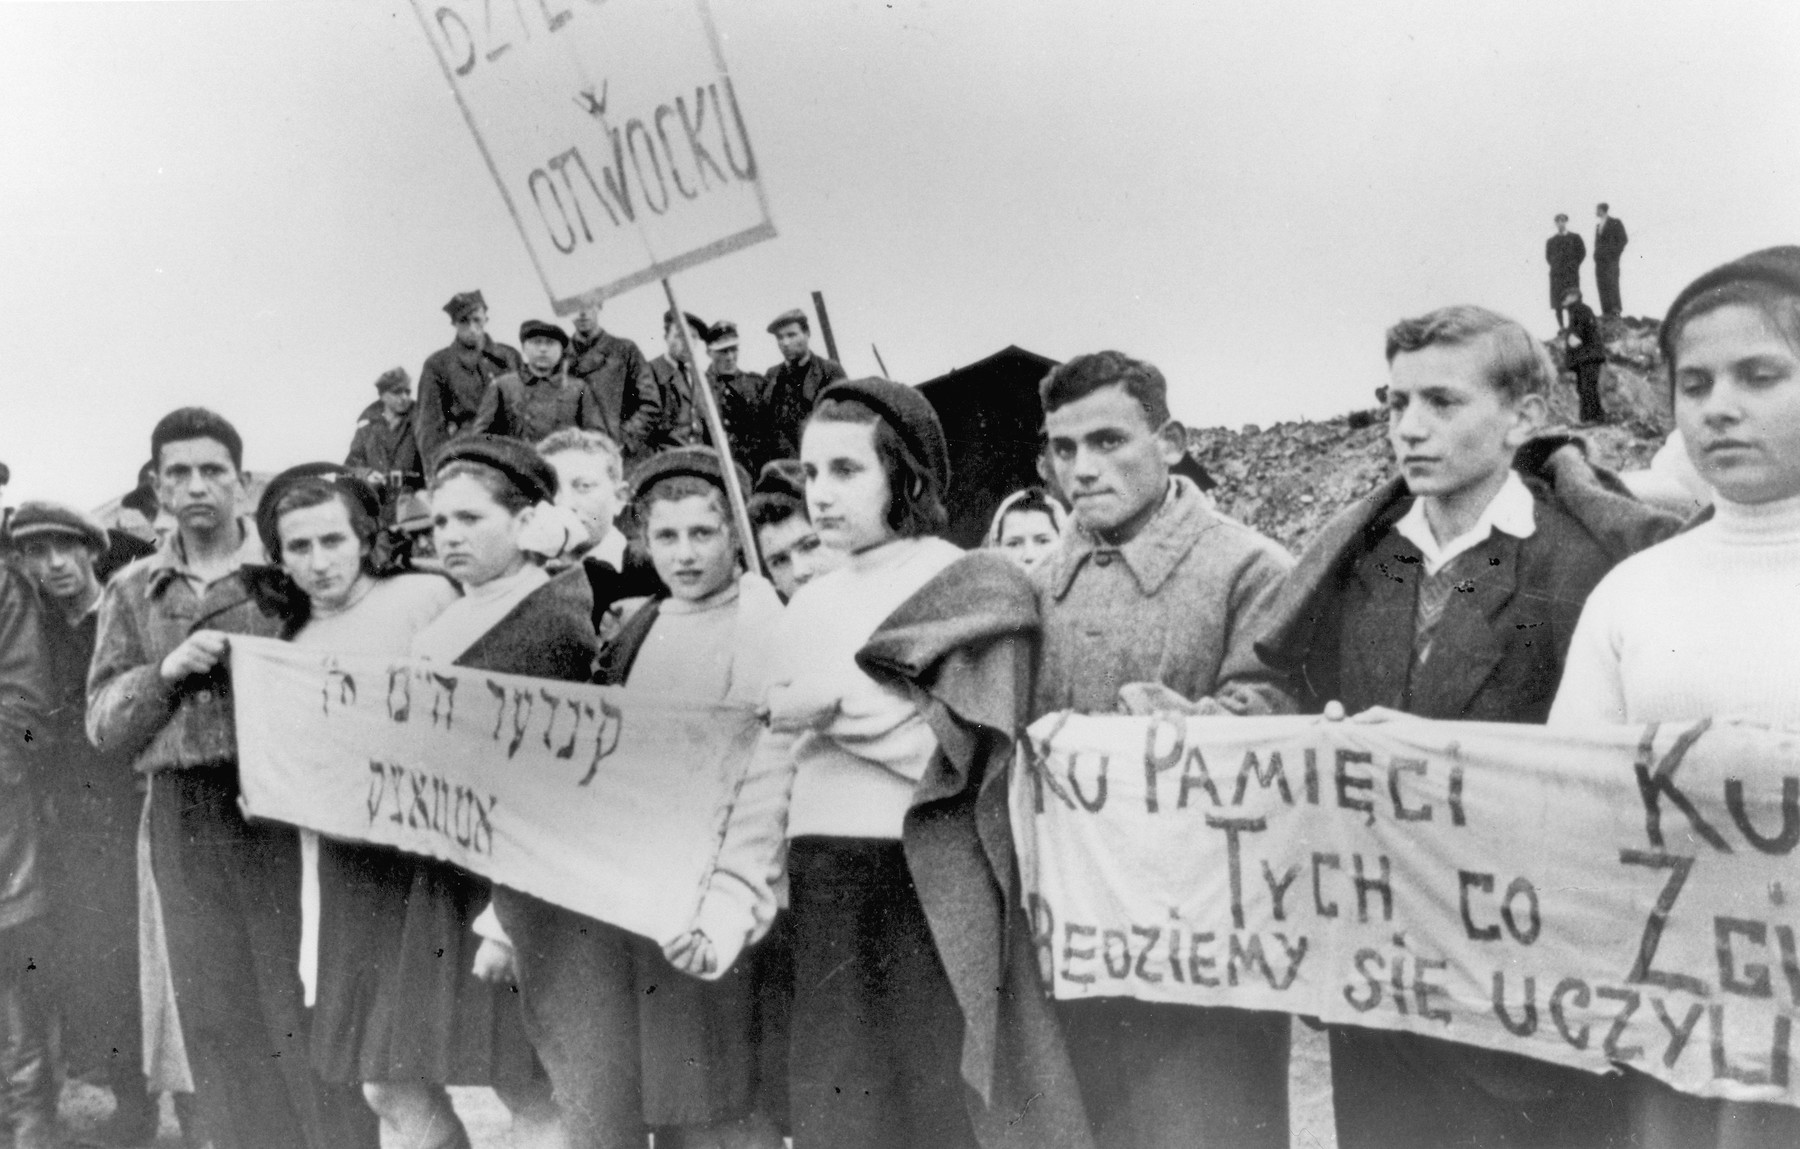 Jewish children from Otwock carrying signs and banners attend a demonstration [probably to mark the fourth anniversary of the Warsaw ghetto uprising].